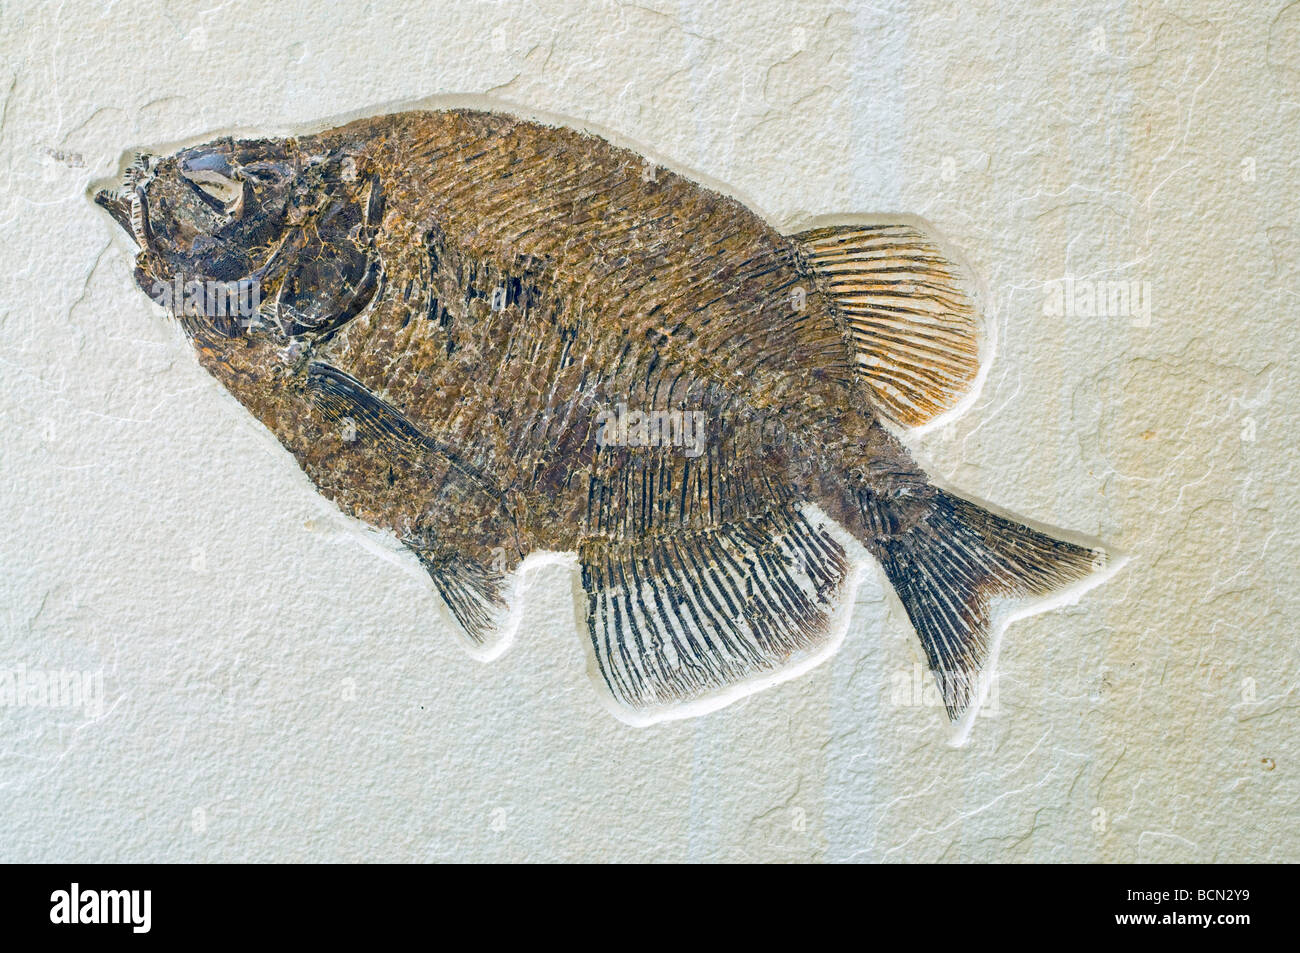 Fish Fossil Phareodus, Laggerstatte deposits of the Green River Formation Wyoming USA Eocene Era, by Dominique Braud/Dembinsky - Stock Image